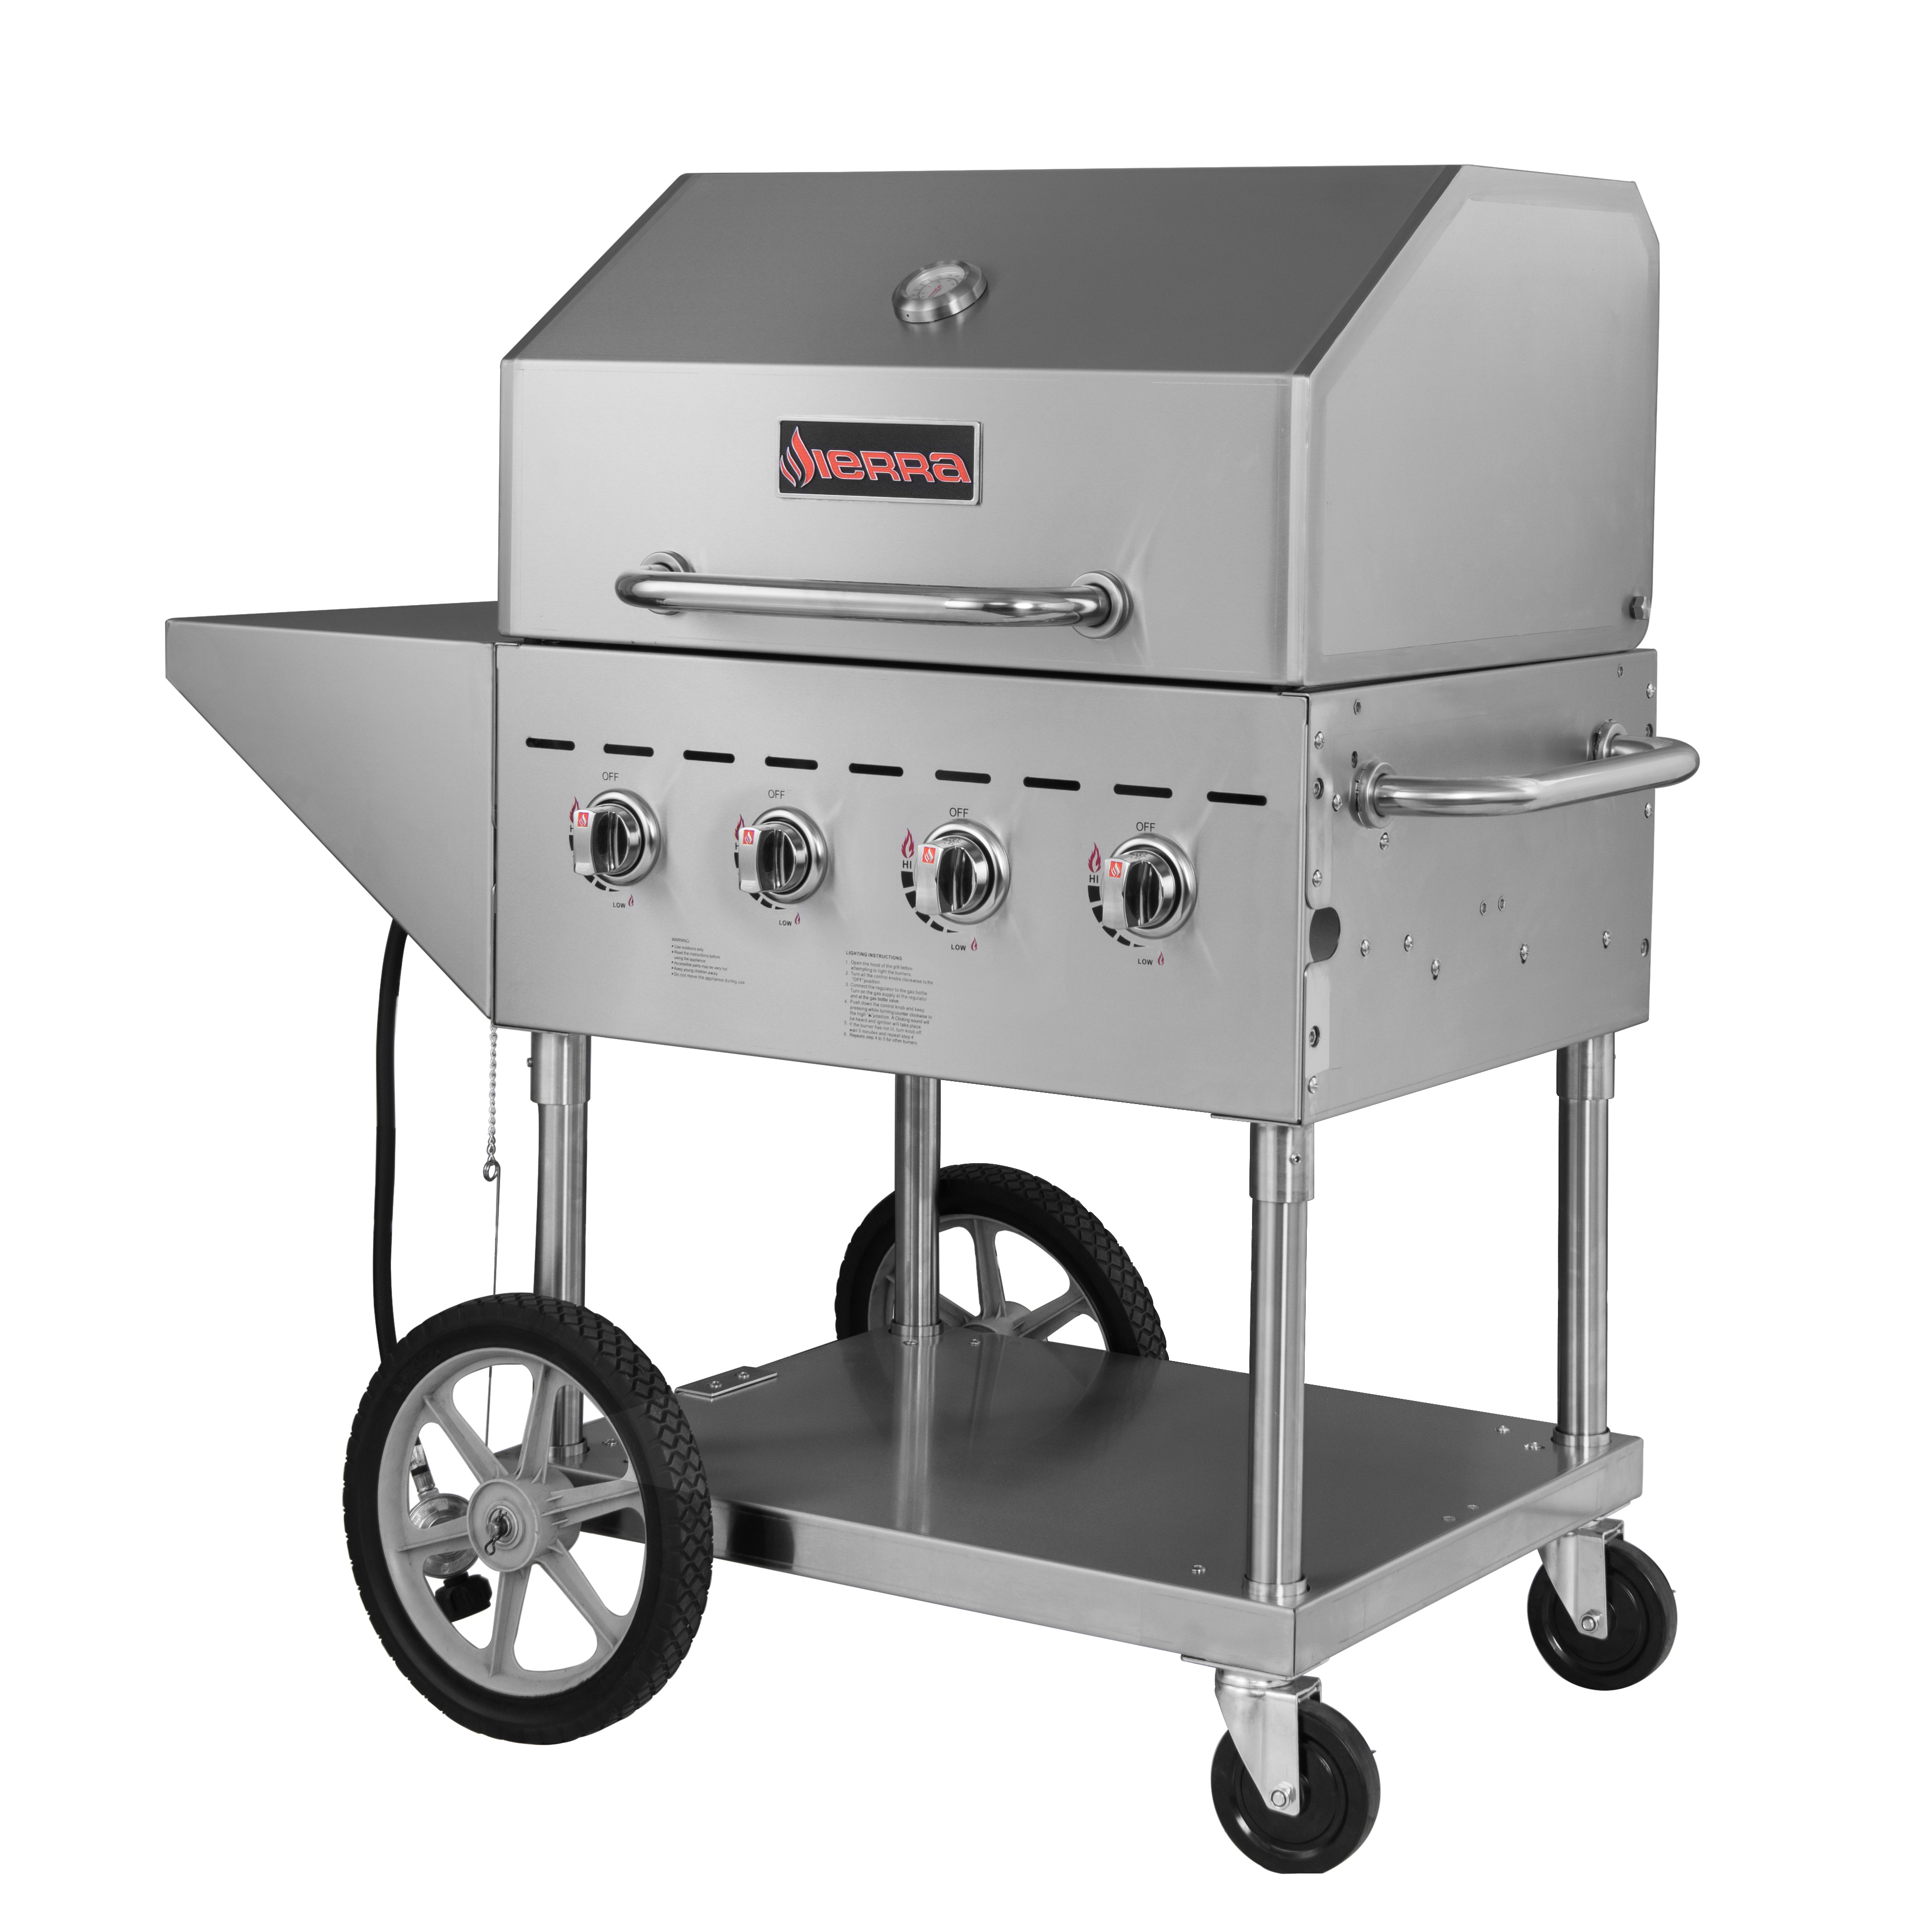 MVP SRBQ-30 charbroiler, gas, outdoor grill